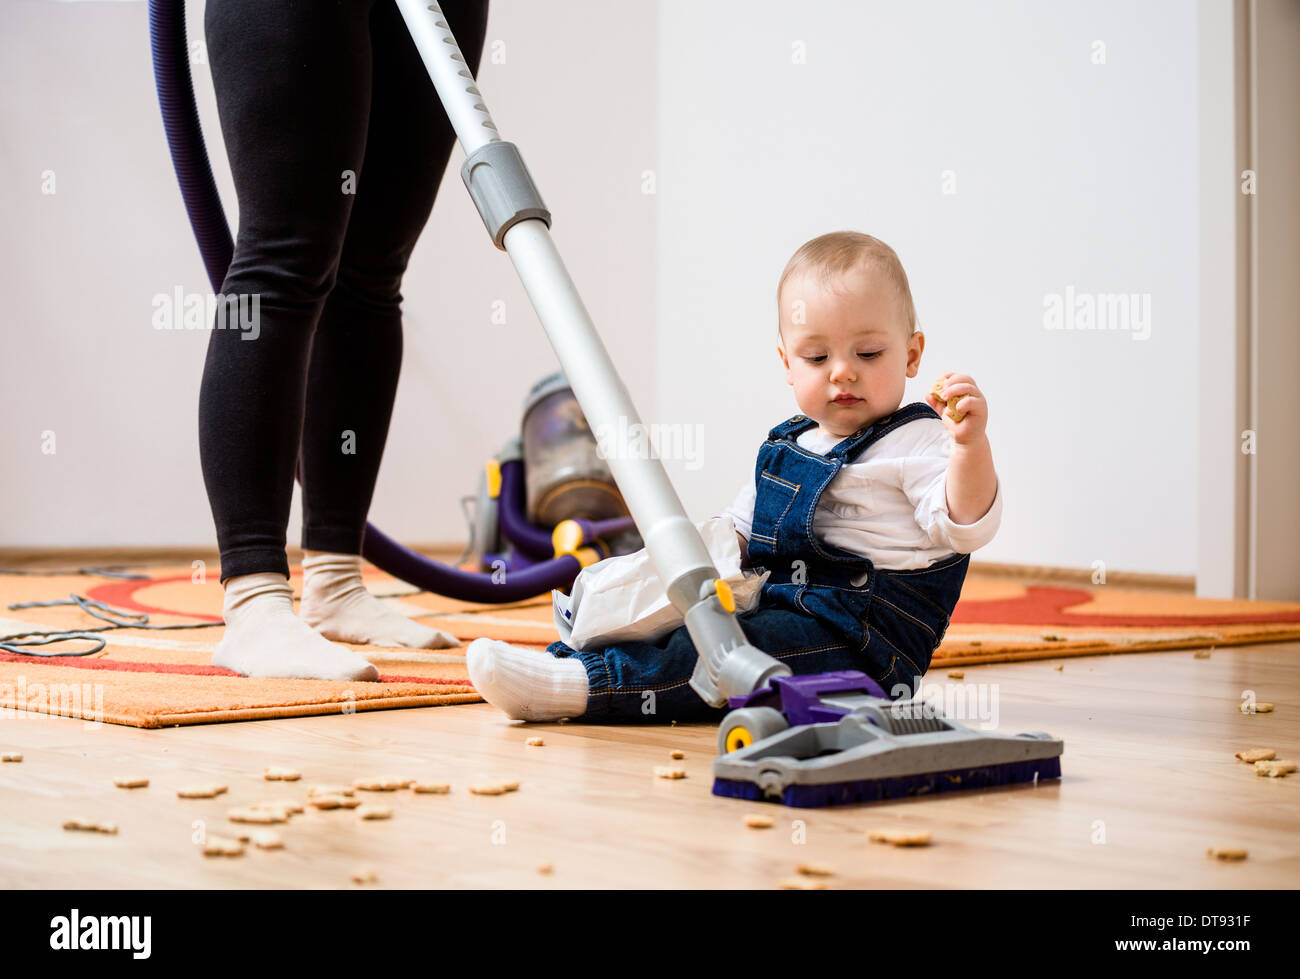 Cleaning up the room - woman with vacuum cleaner, baby sitting on floor - Stock Image